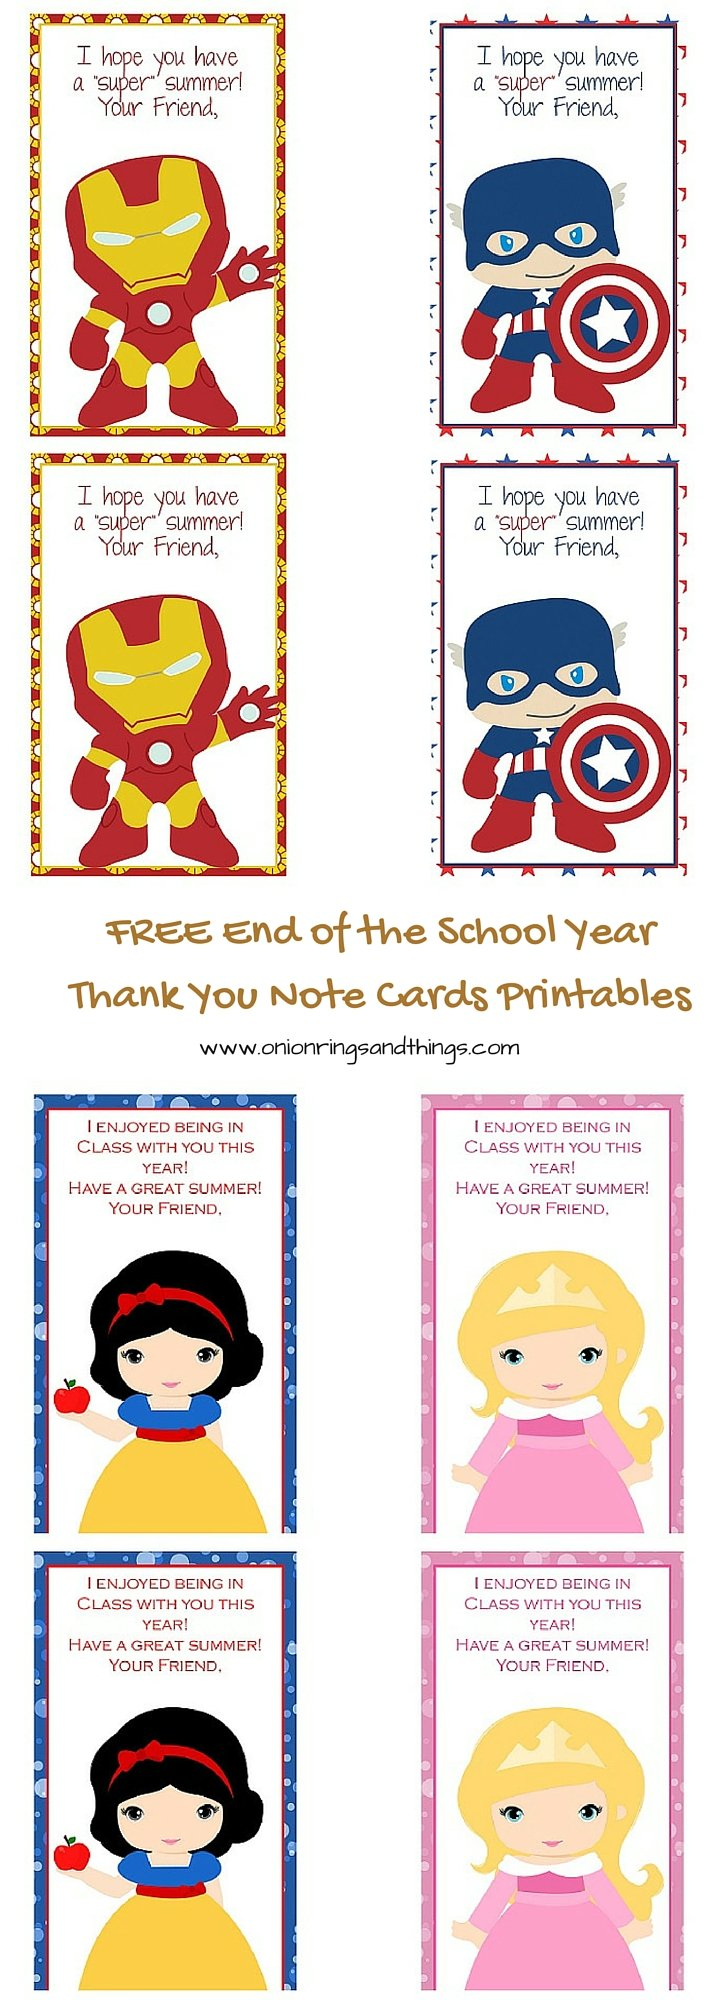 FREE last school day thank you note card printables